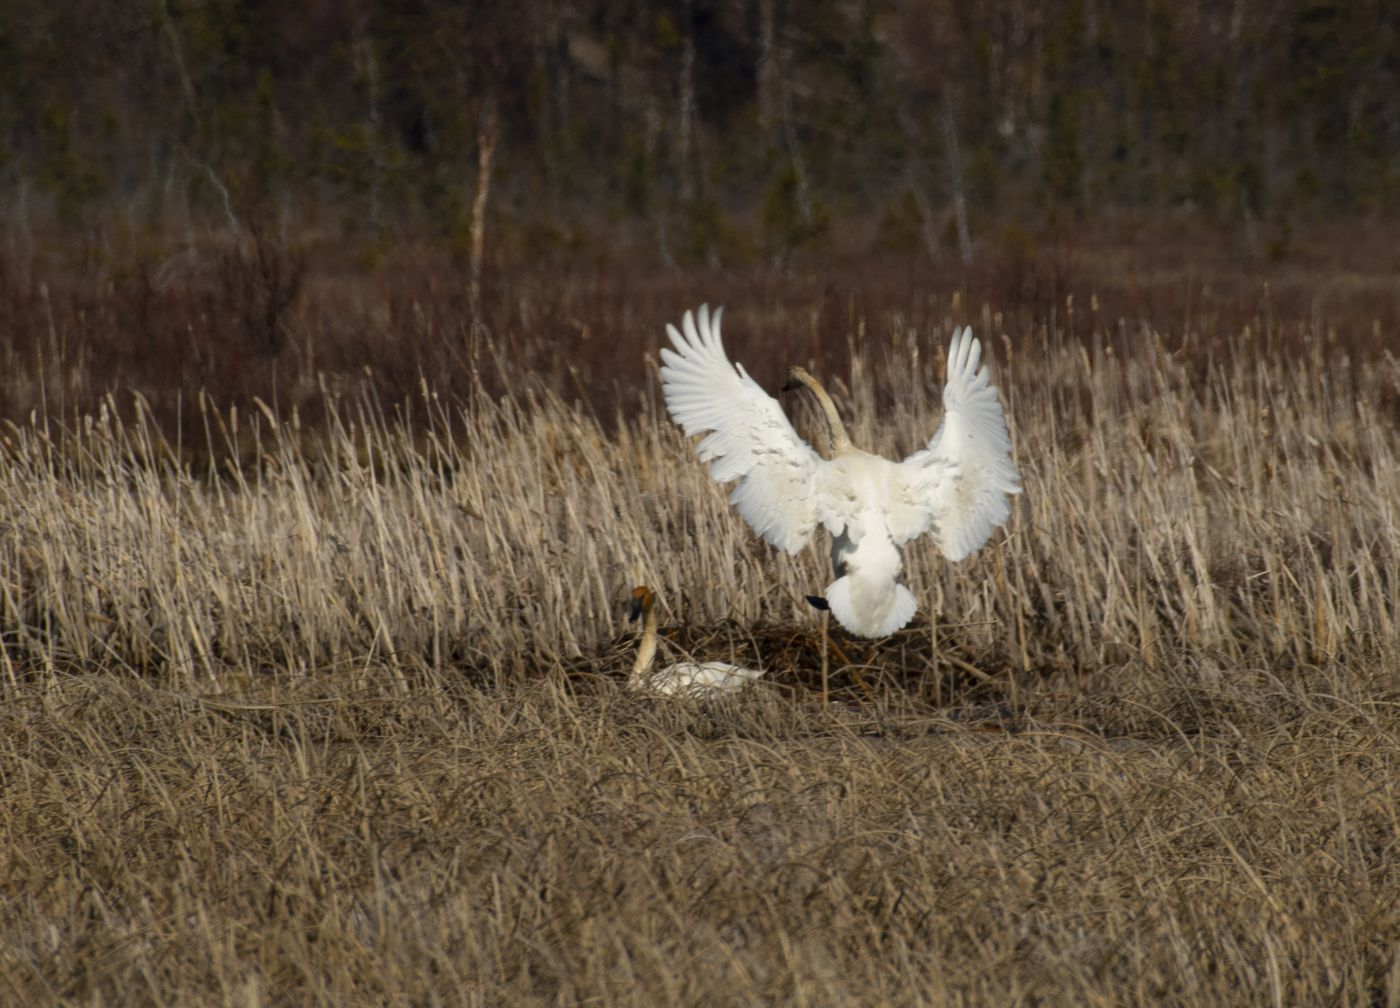 A trumpeter swan lands at the nest as its mate moves off to feed at Potter Marsh in Anchorage on Saturday May 2, 2020. This is the first pair of swans to nest at Potter Marsh in the memory of Anchorage Coastal Refuge managers and local birders. (Photo by Bob Hallinen)